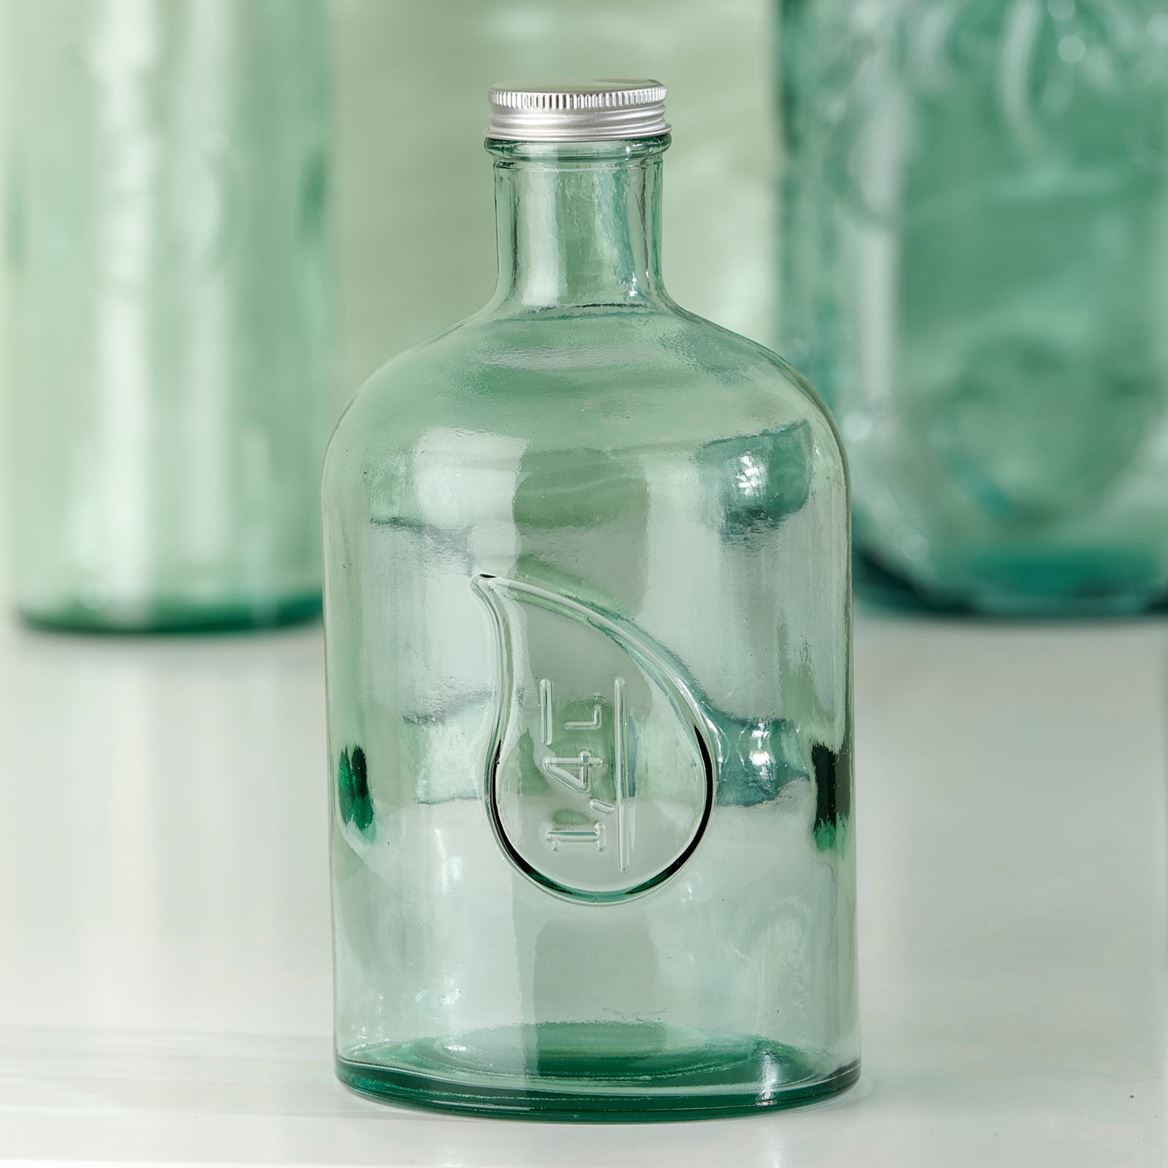 CAPACITY Flasche Transparent_capacity-flasche-transparent